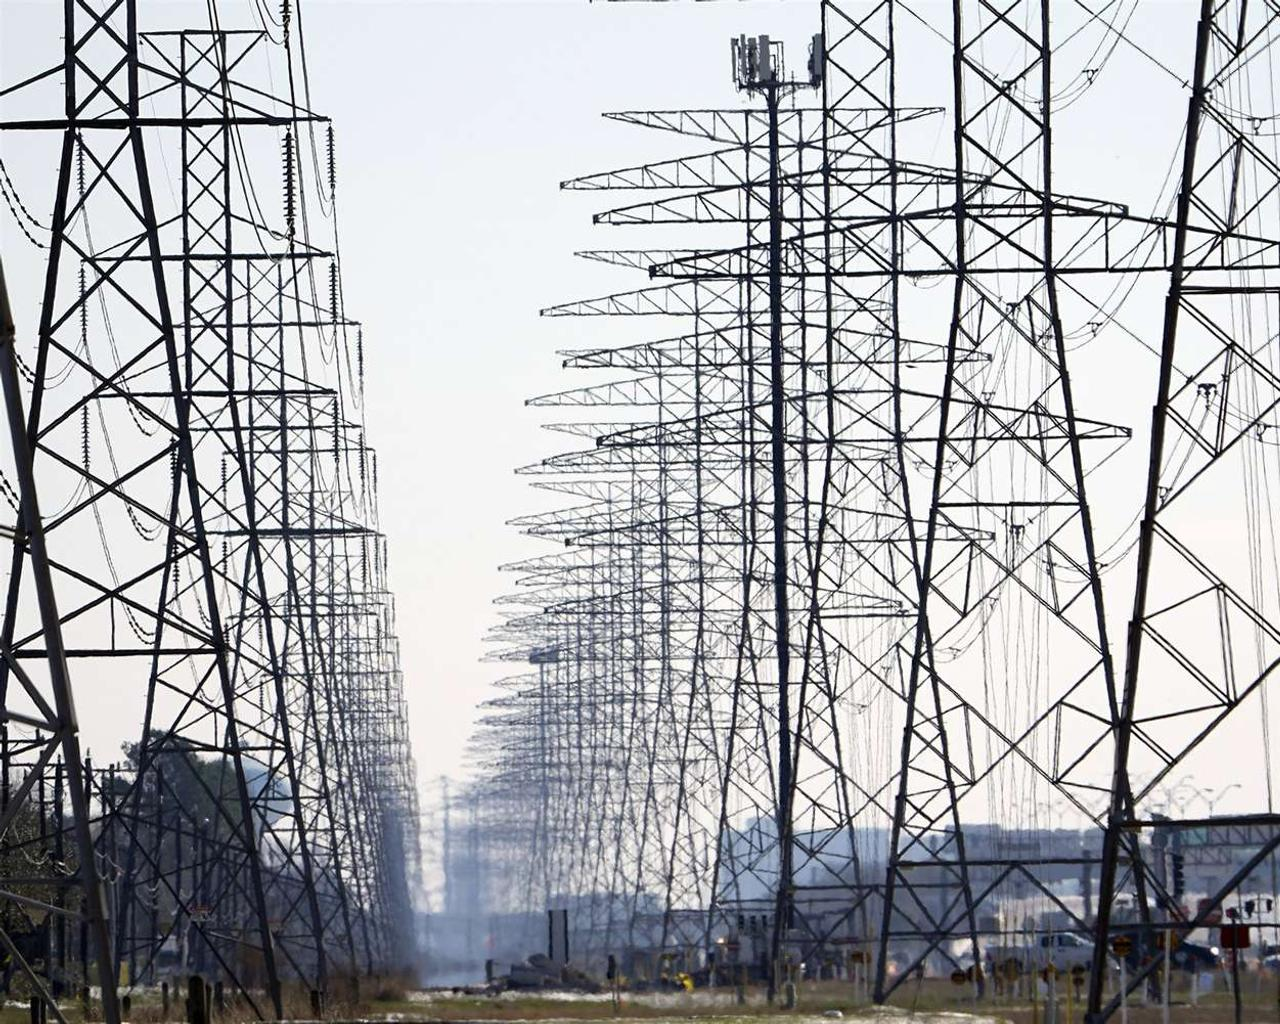 Texas power provider asks residents to conserve energy despite typical spring conditions